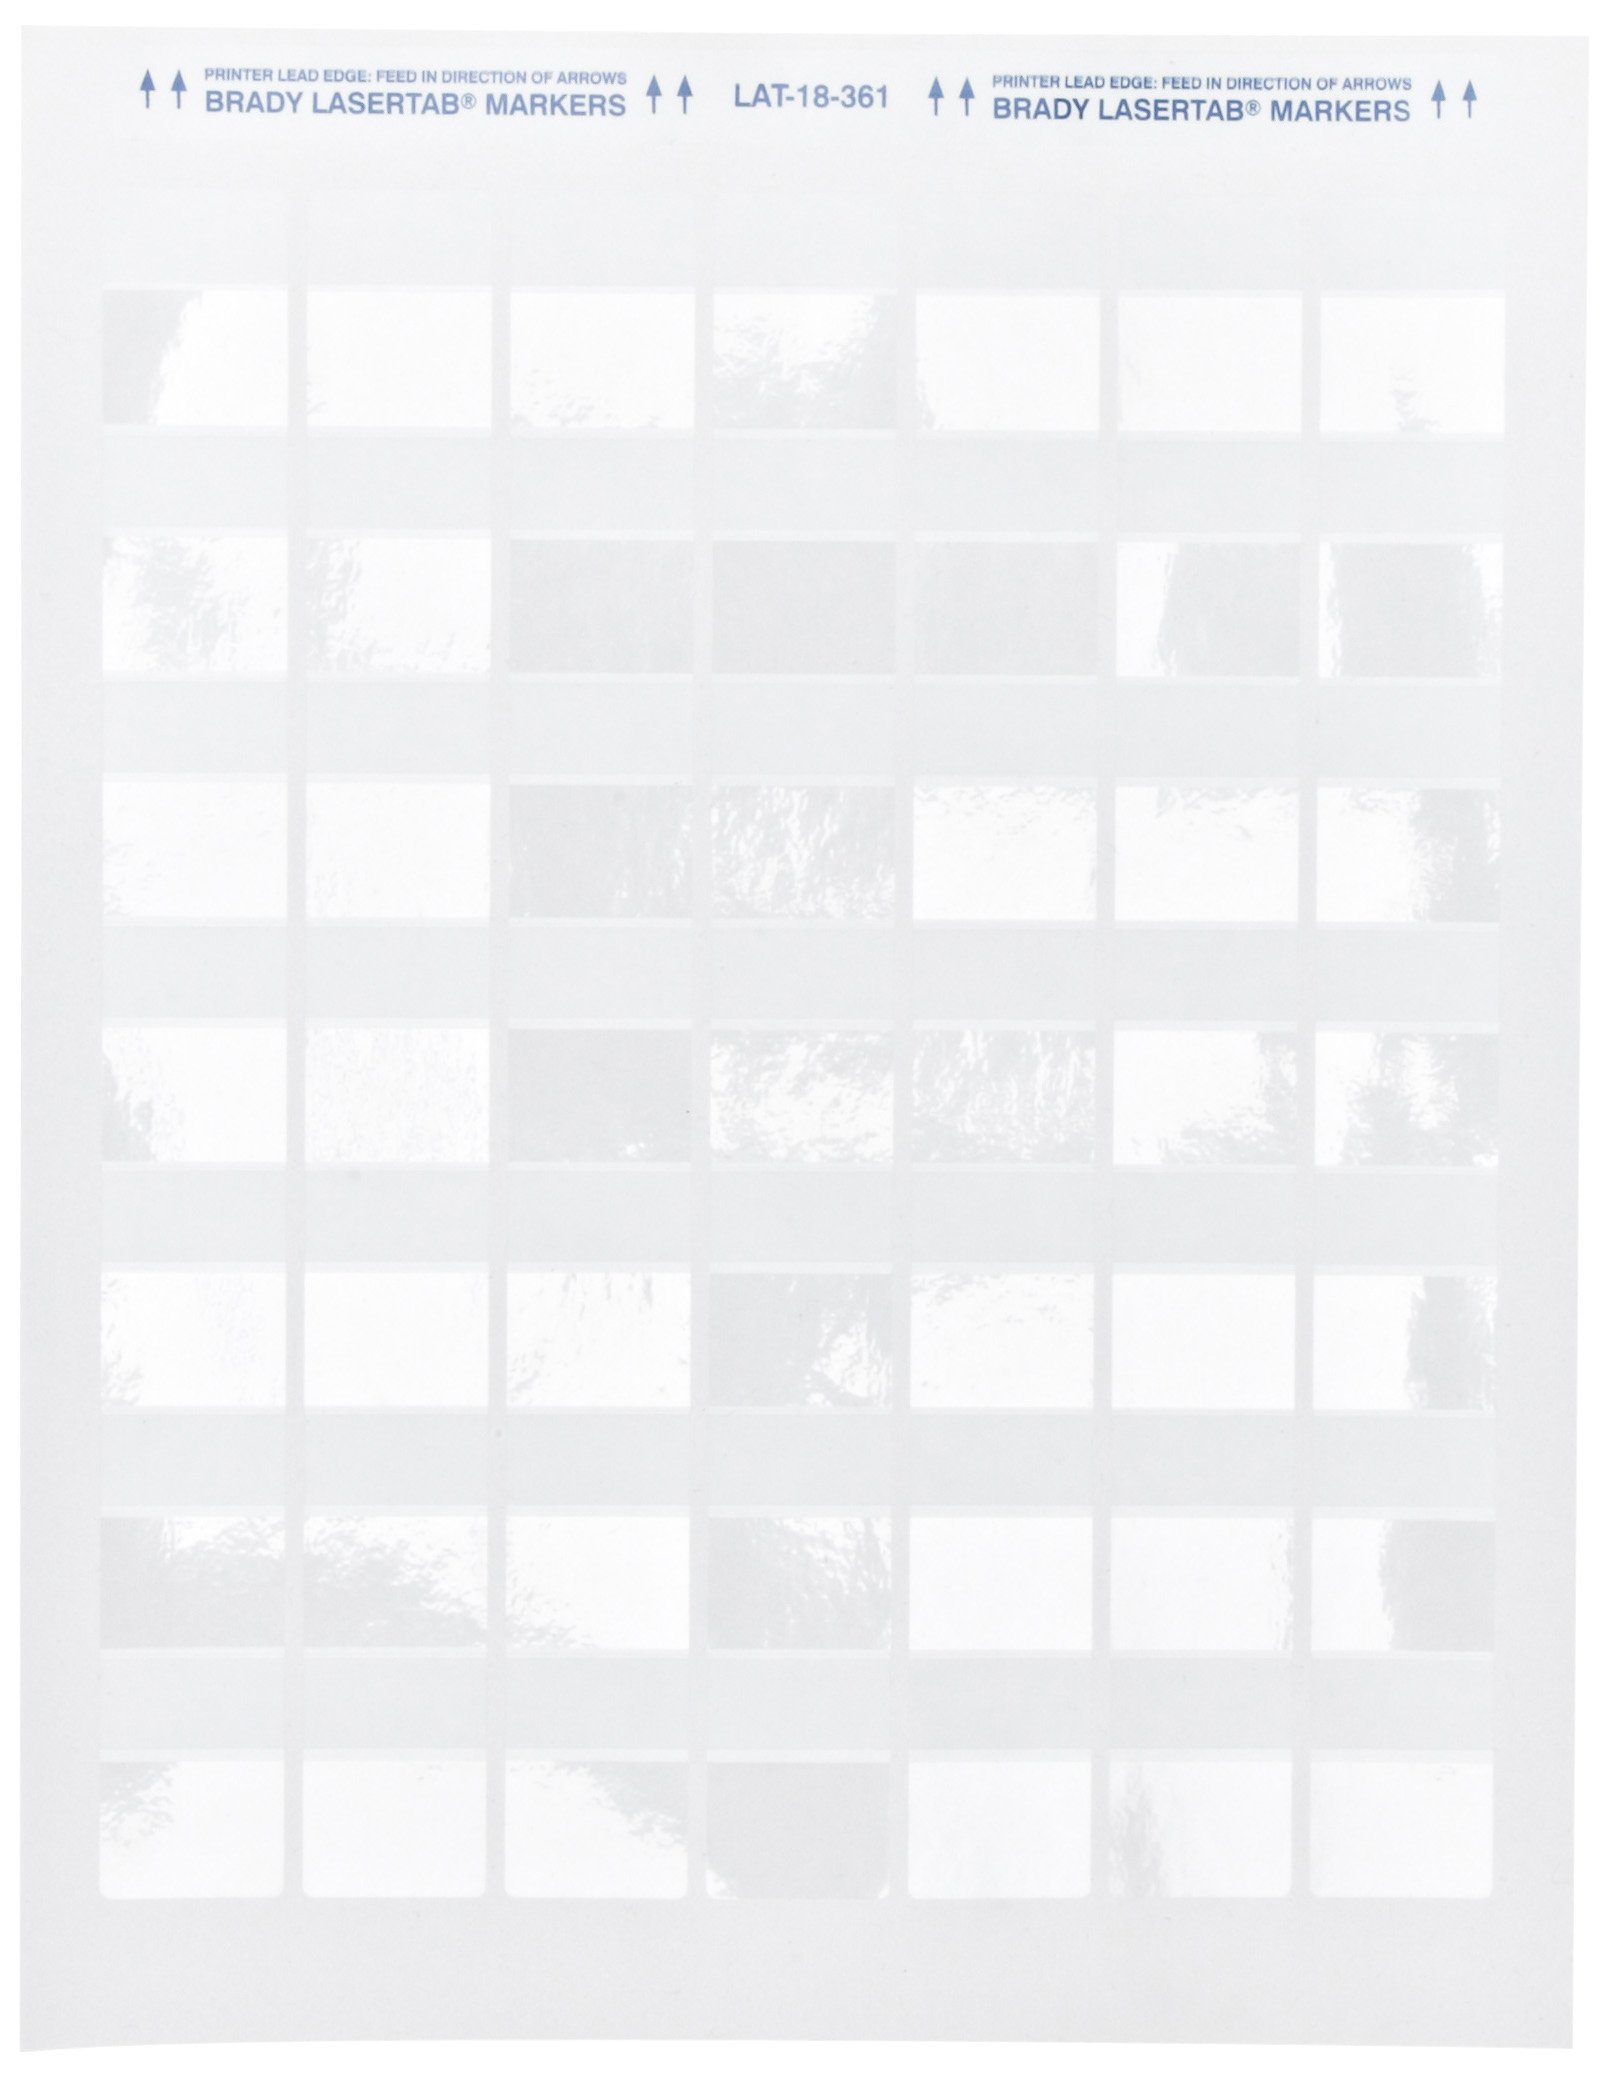 Brady Self-Laminating Laser Printable Polyester Labels (LAT-18-361-2.5) - Matte Finish, White/Translucent Labels - 1'' Width, 1.33'' Height (Pack of 1000)